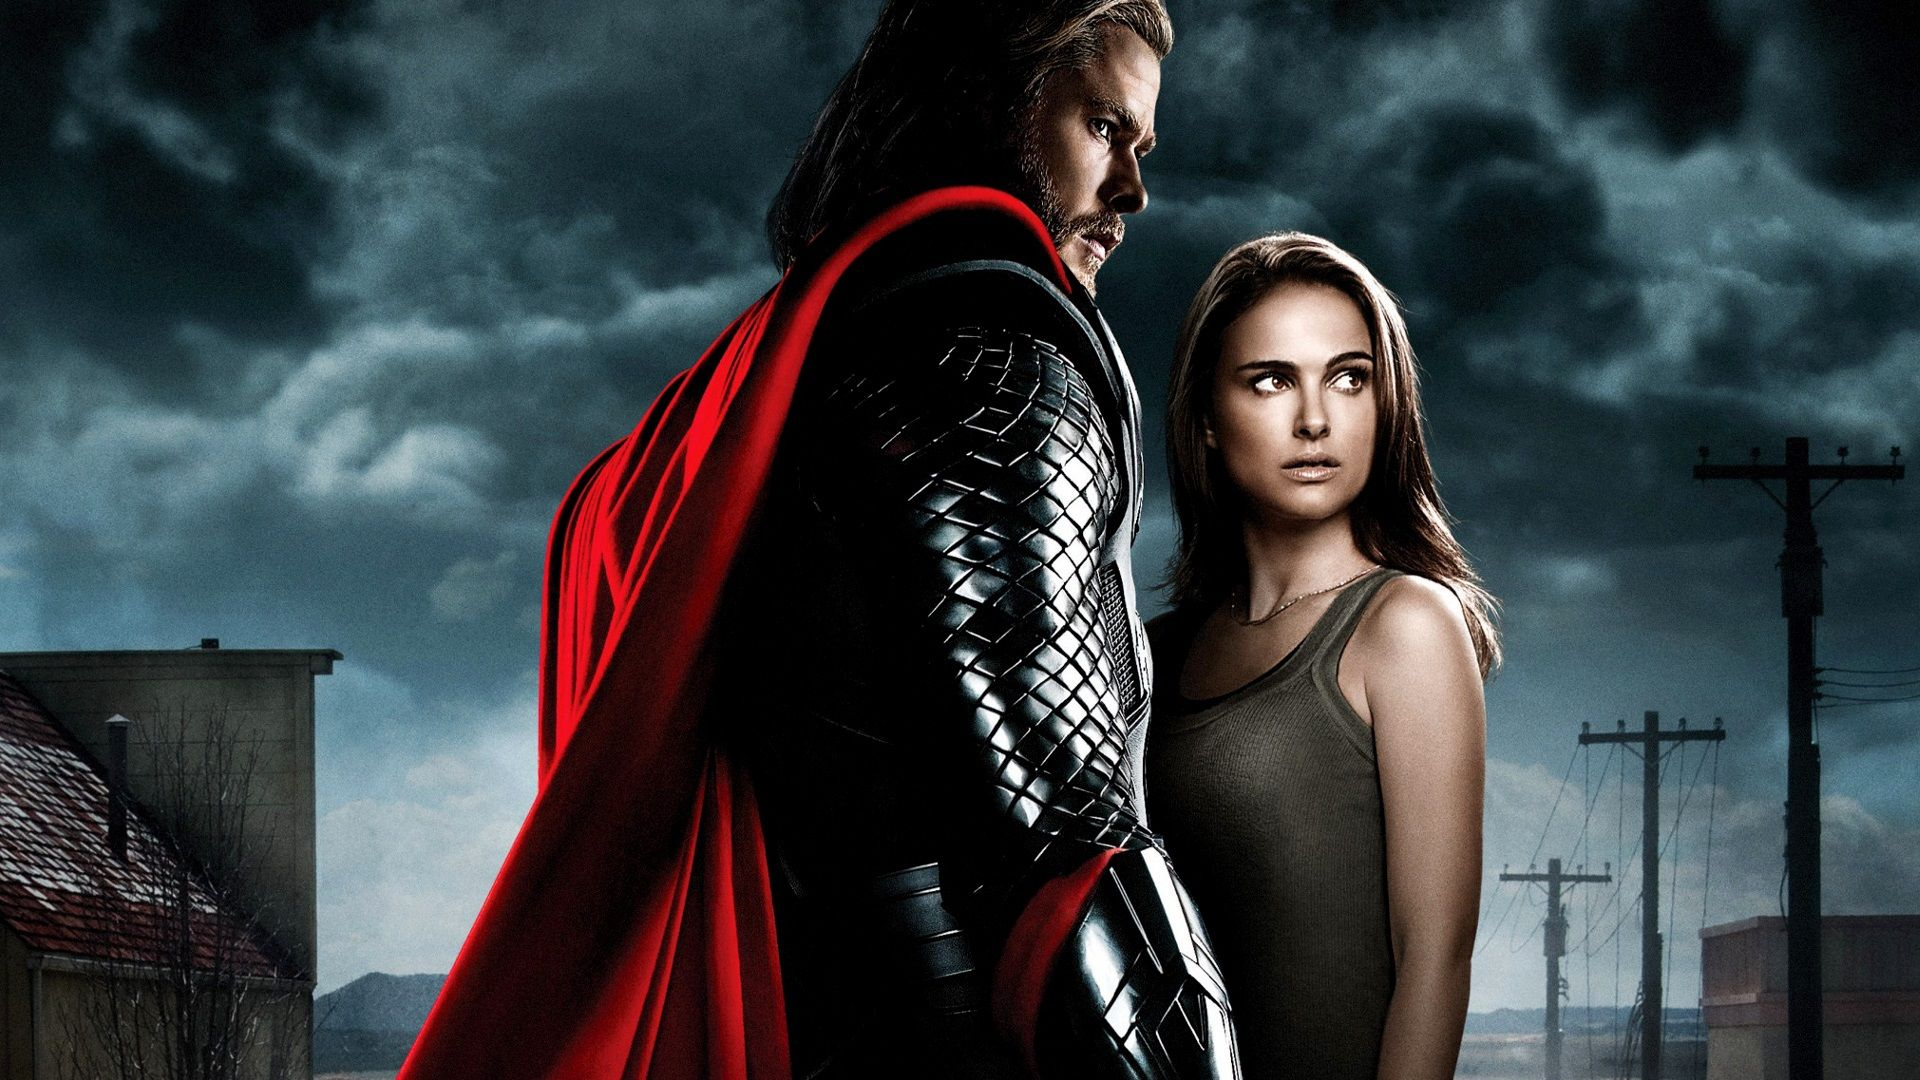 Thor Wallpapers, Pictures, Image